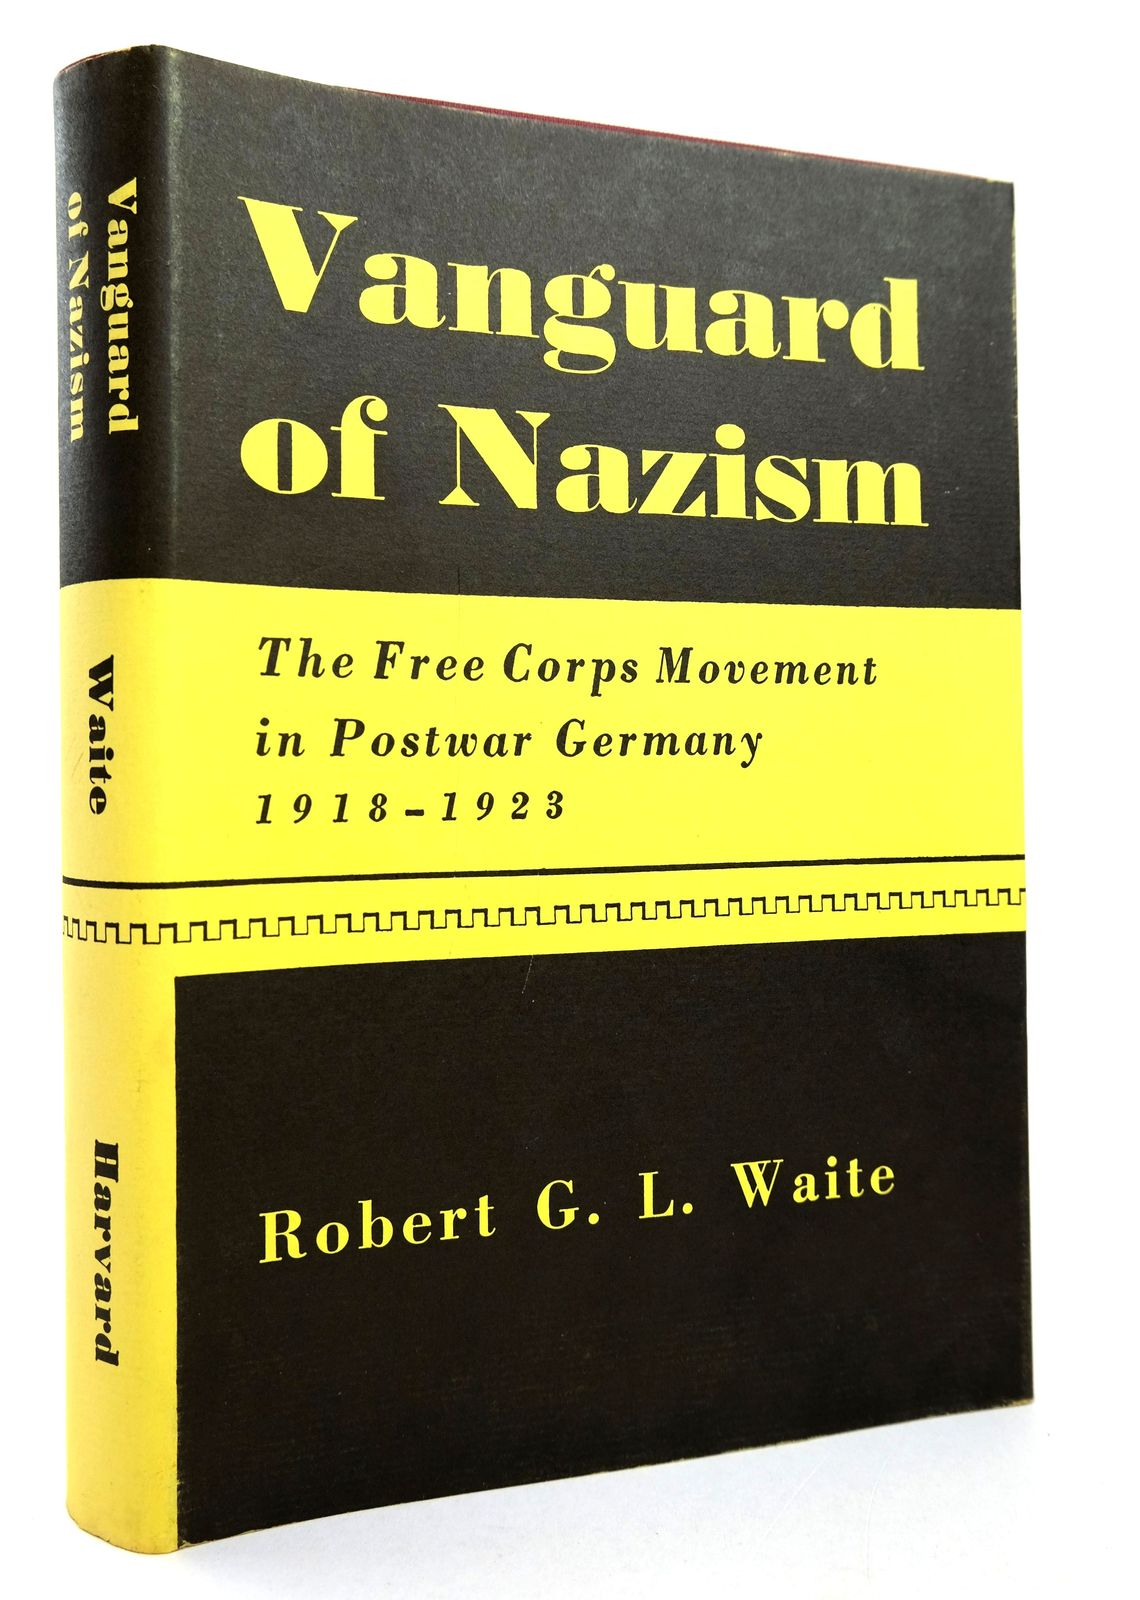 Photo of VANGUARD OF NAZISM: THE FREE CORPS MOVEMENT IN POSTWAR GERMANY 1918-1923 written by Waite, Robert G.L. published by Harvard University Press (STOCK CODE: 1818764)  for sale by Stella & Rose's Books